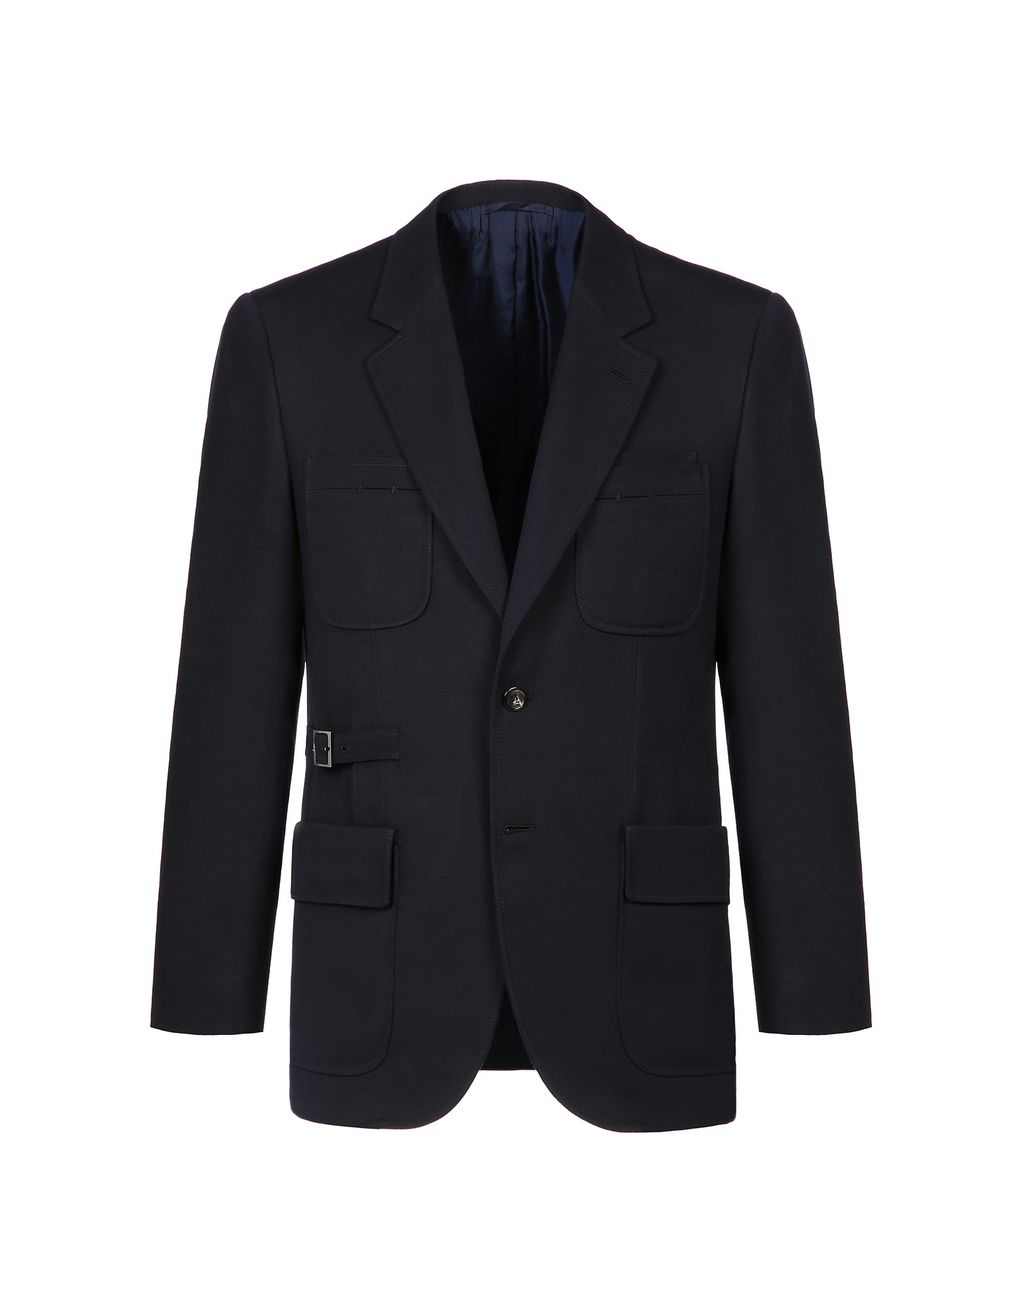 BRIONI Neues Reisejackett in Marineblau Formal Jacket [*** pickupInStoreShippingNotGuaranteed_info ***] f